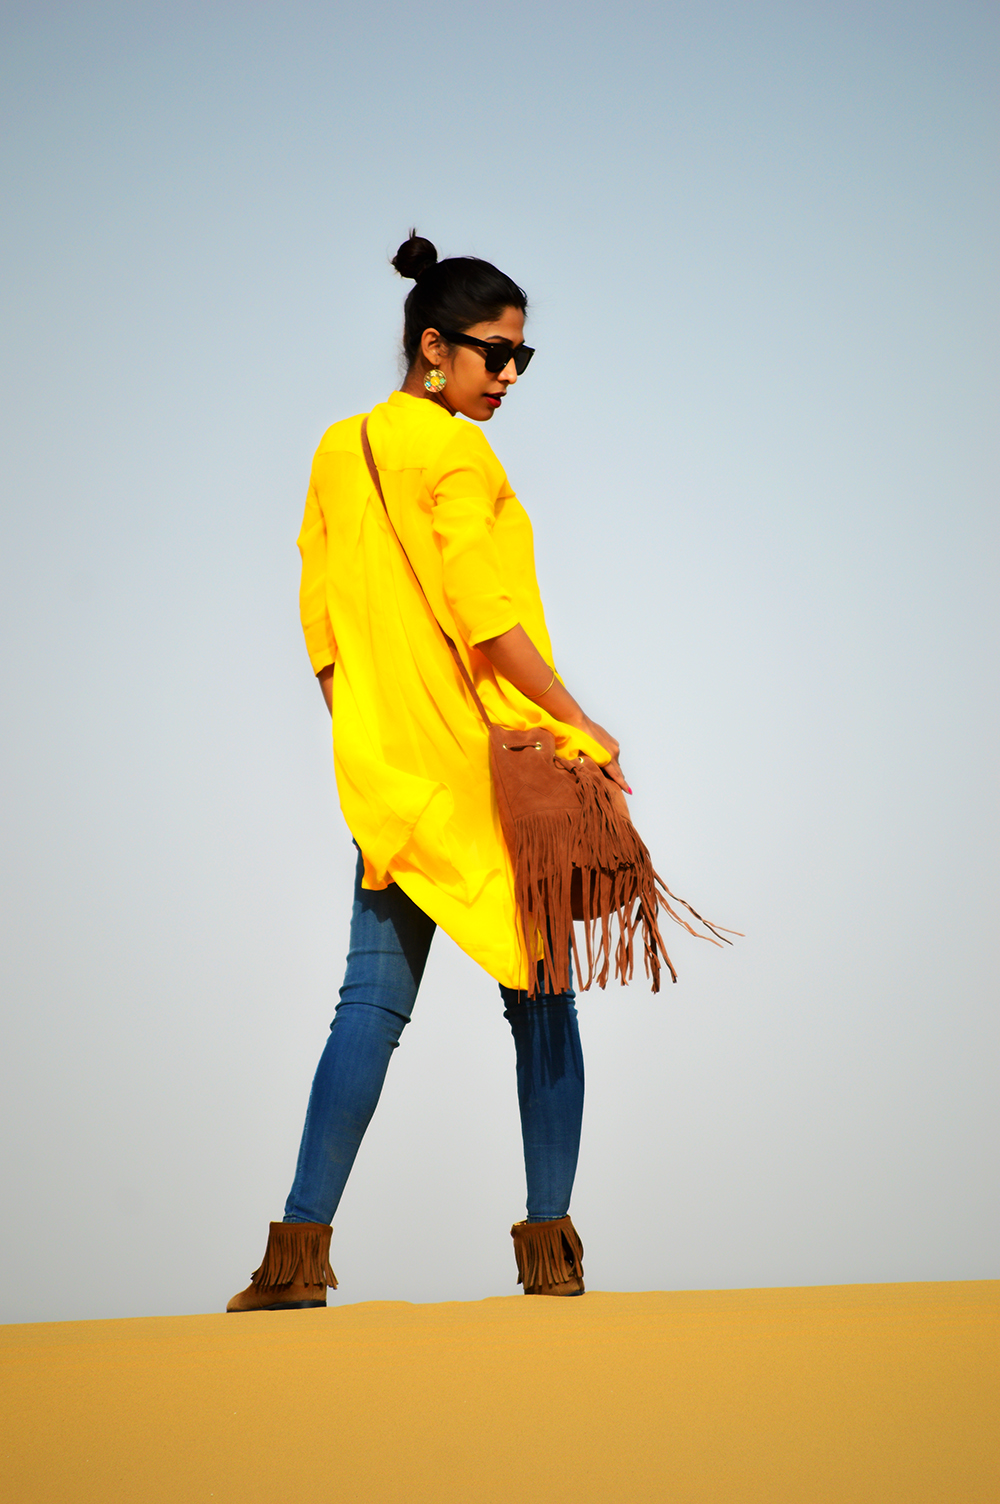 Fashion, Style, OOTD, Fashion Photography, Street Style, Blue Denim, Yellow High-Low top, Fringe Bag, Jabong, Miss Bennett London, Alia Bhatt for Jabong, Travel, Desert Safari, Jaisalmer Trip, Holiday, Travel Post, Outfit Post